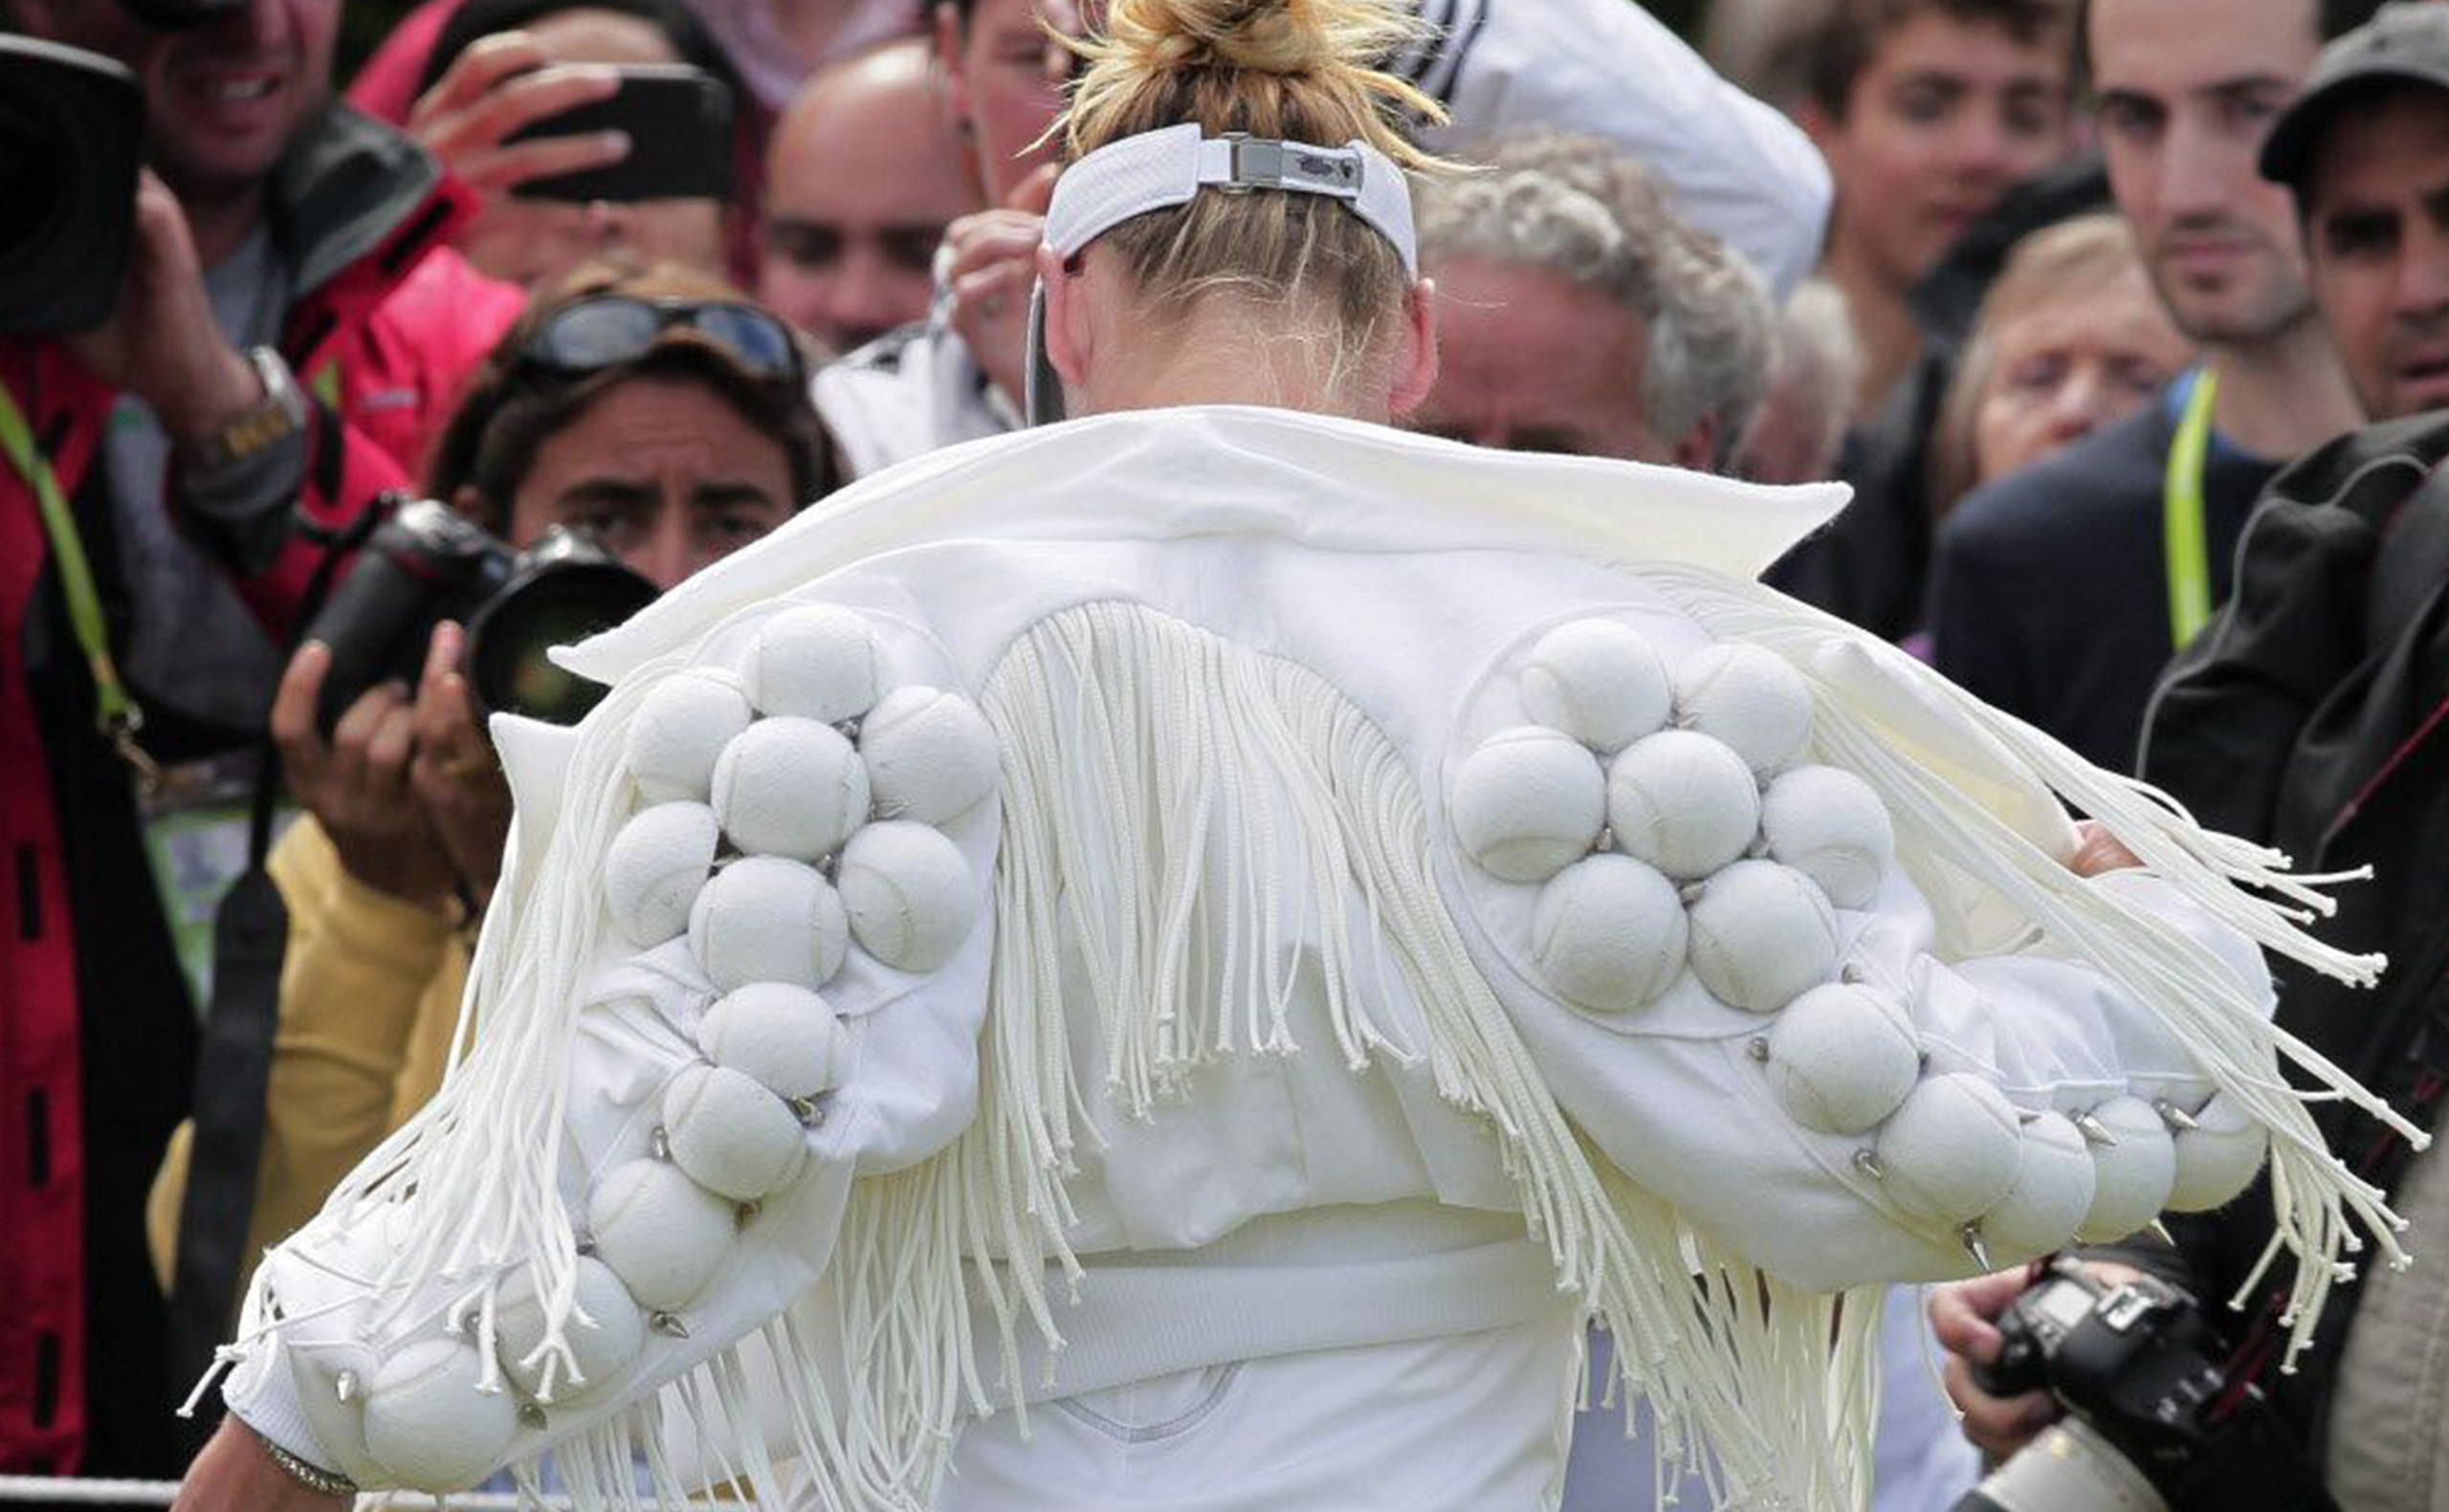 Bethanie Mattek-Sands wears a fringed jacket decorated with white tennis balls in 2011